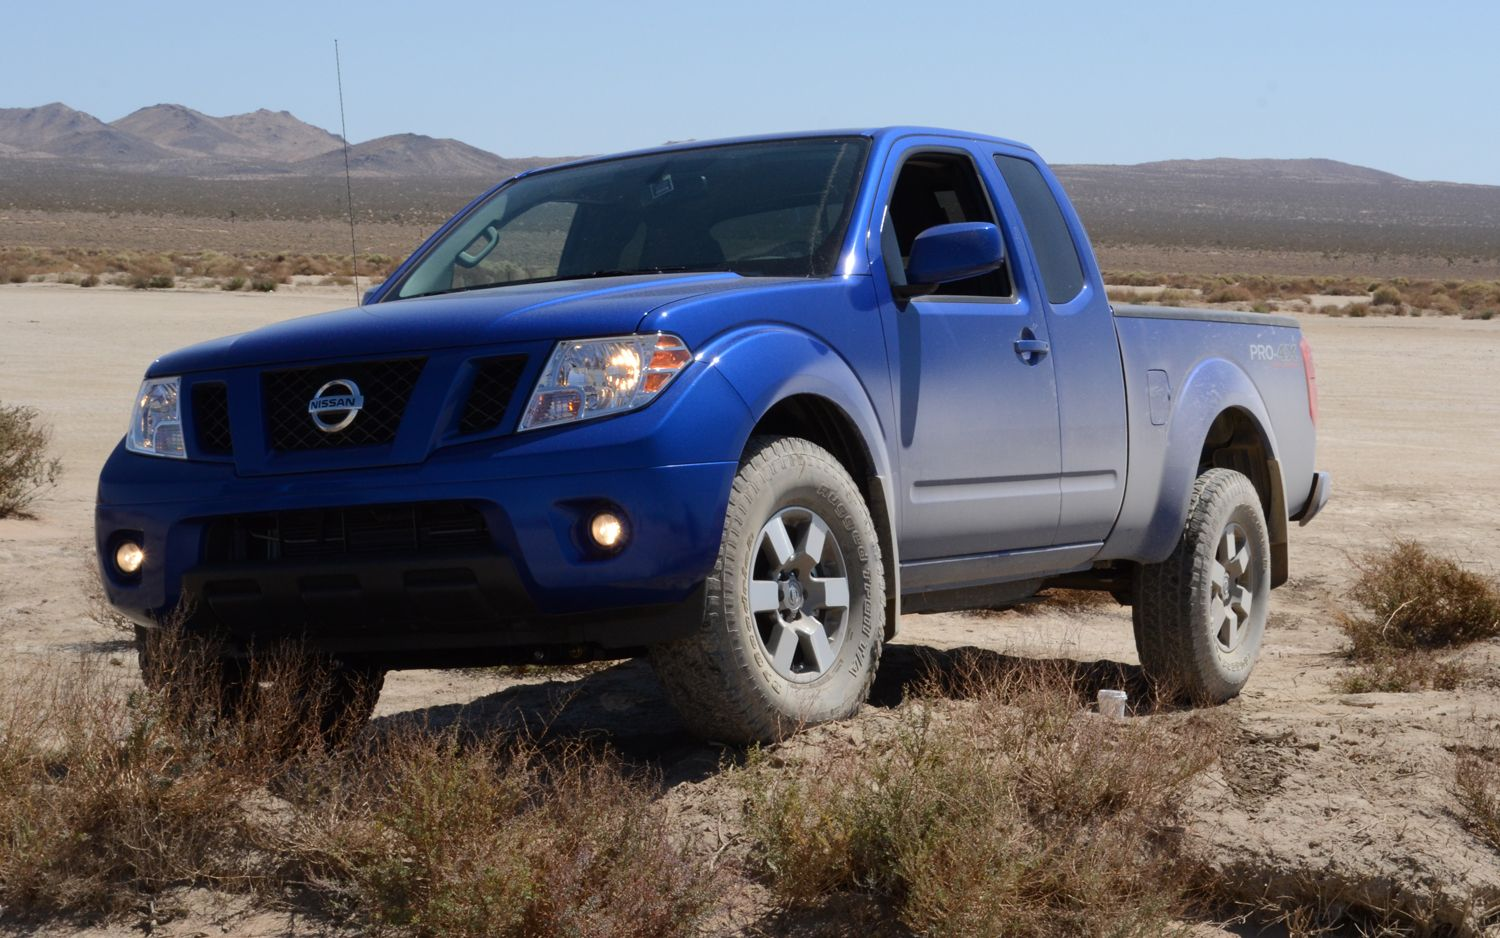 Awesome cool blacked out nissan frontier www imperionissangardengrove com frontier pinterest nissan and cars